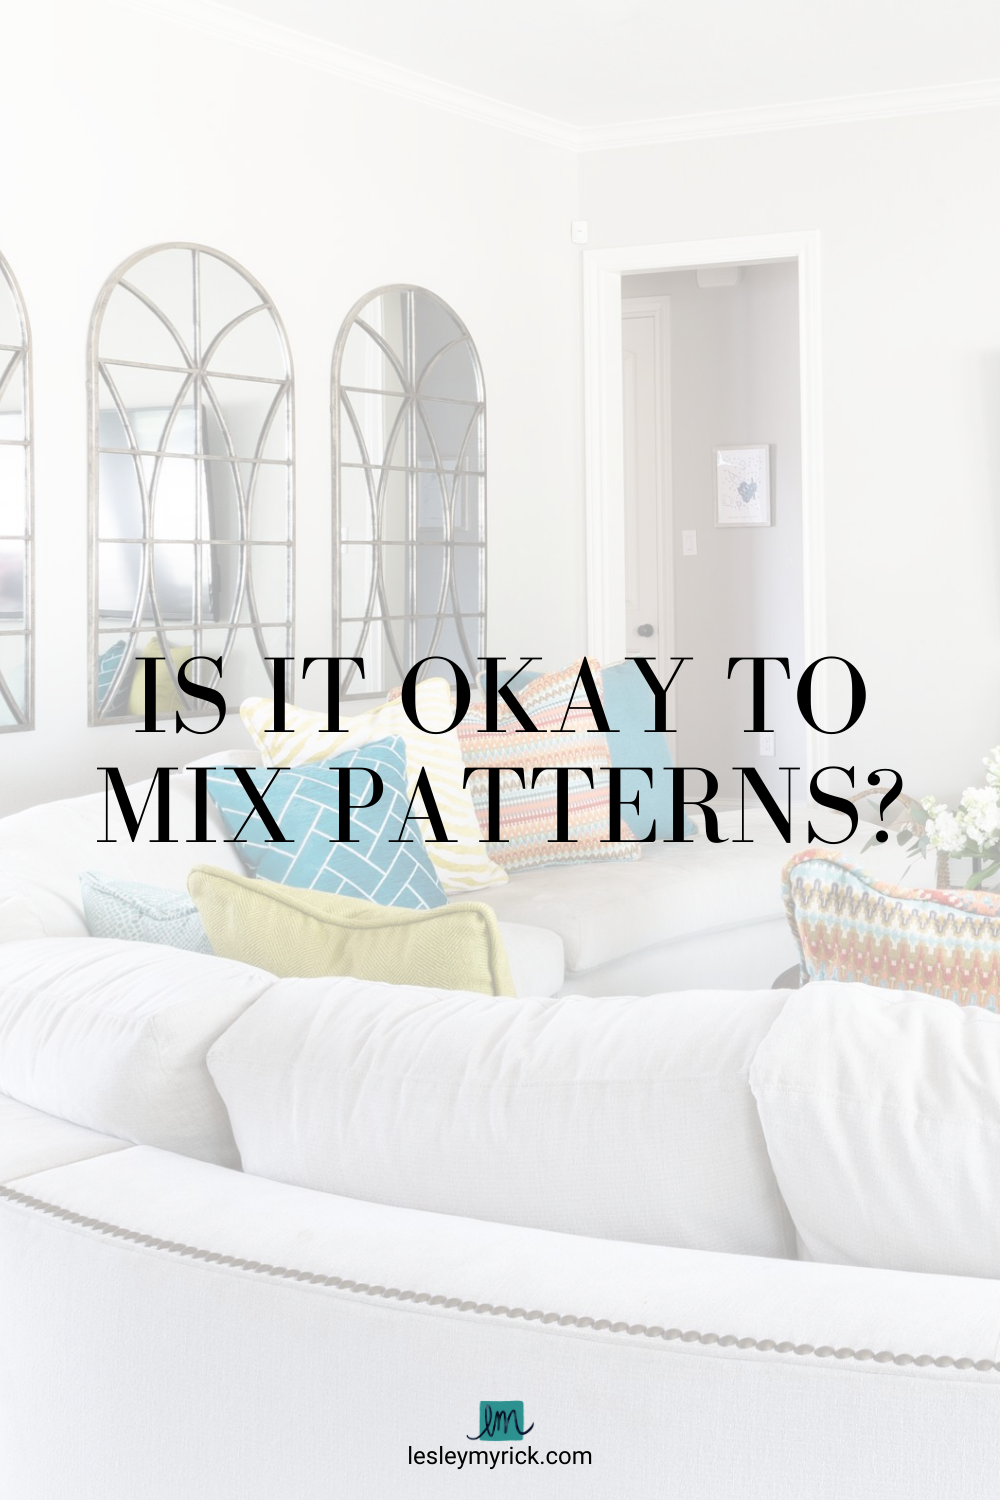 Pattern mixing can look chic and eclectic, or can cross the line into crazytown. Here are two key tips to mix patterns - and when to just shove all the rules out the door!